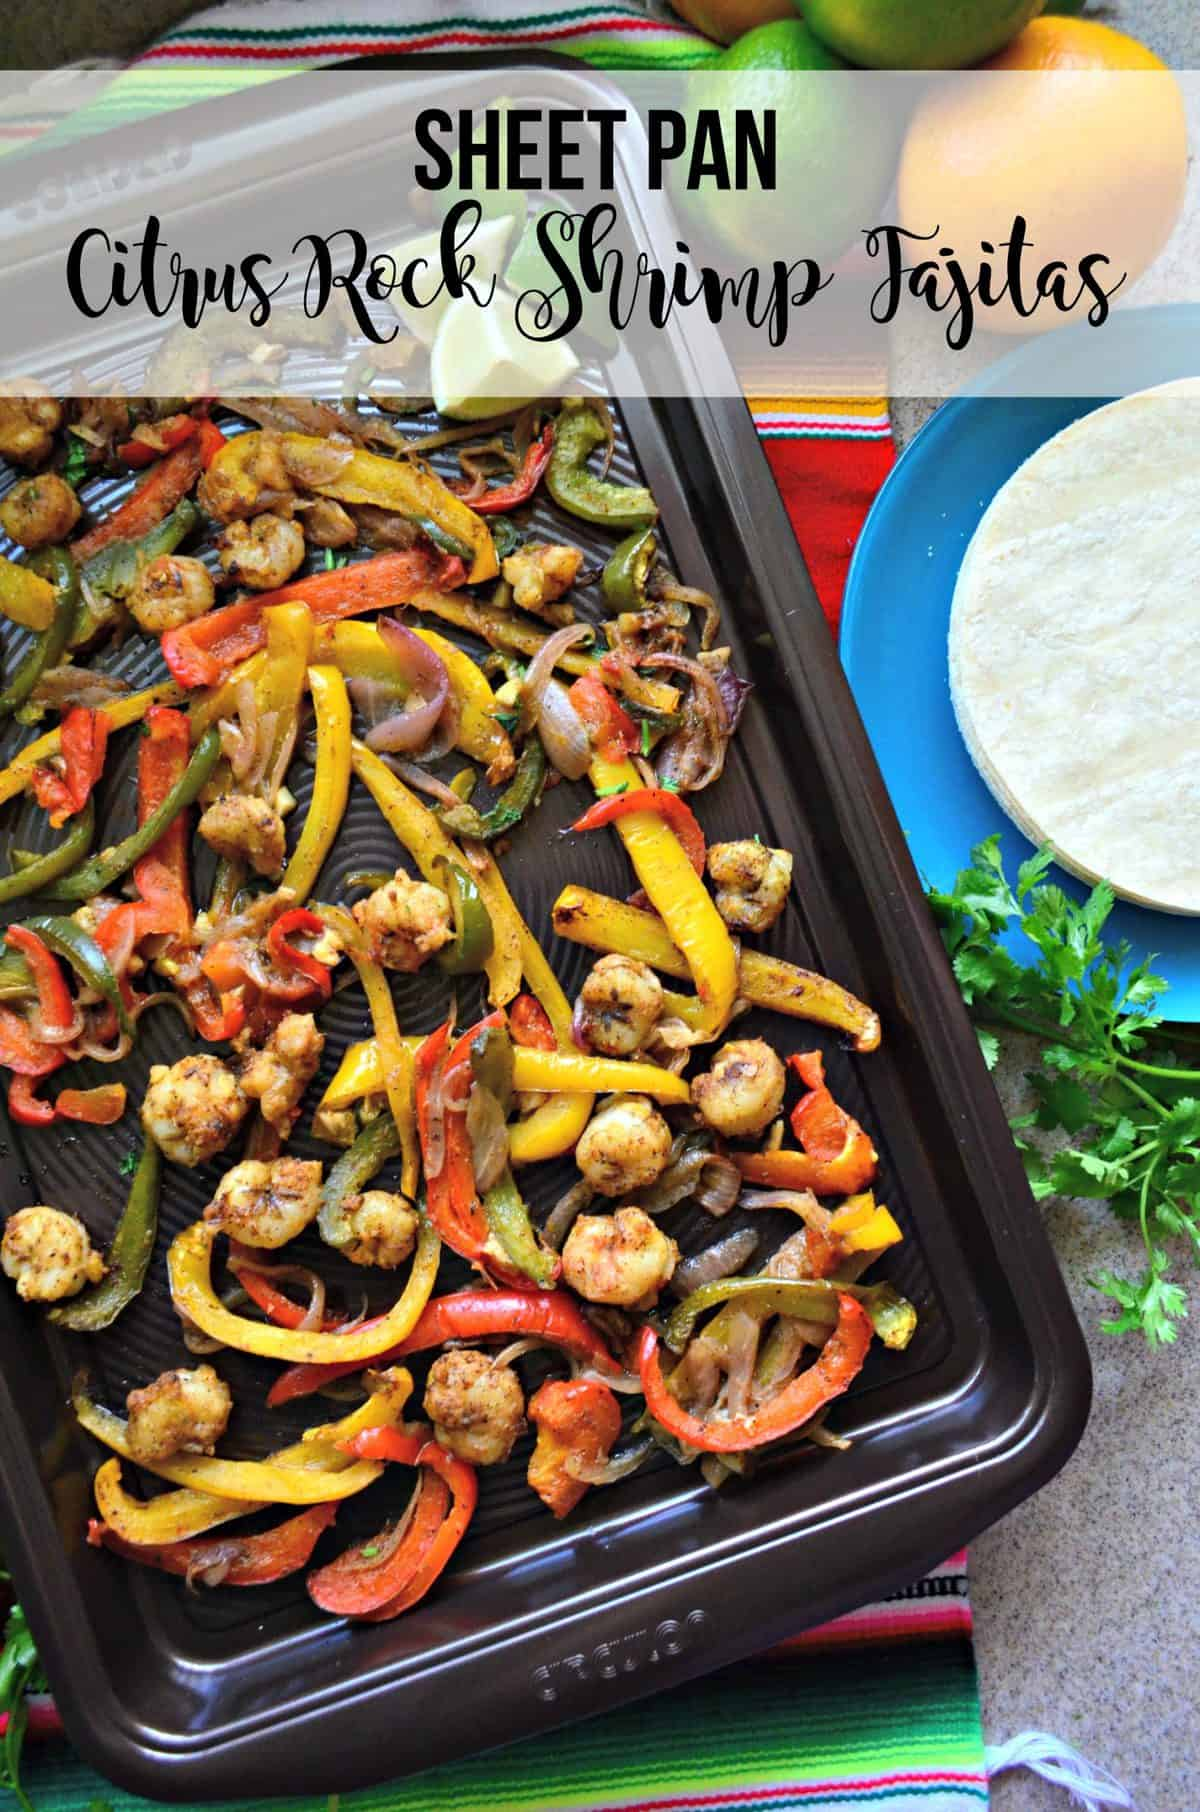 seasoned shrimp, sliced bell peppers, and onions on a sheet pan with lime and title text.